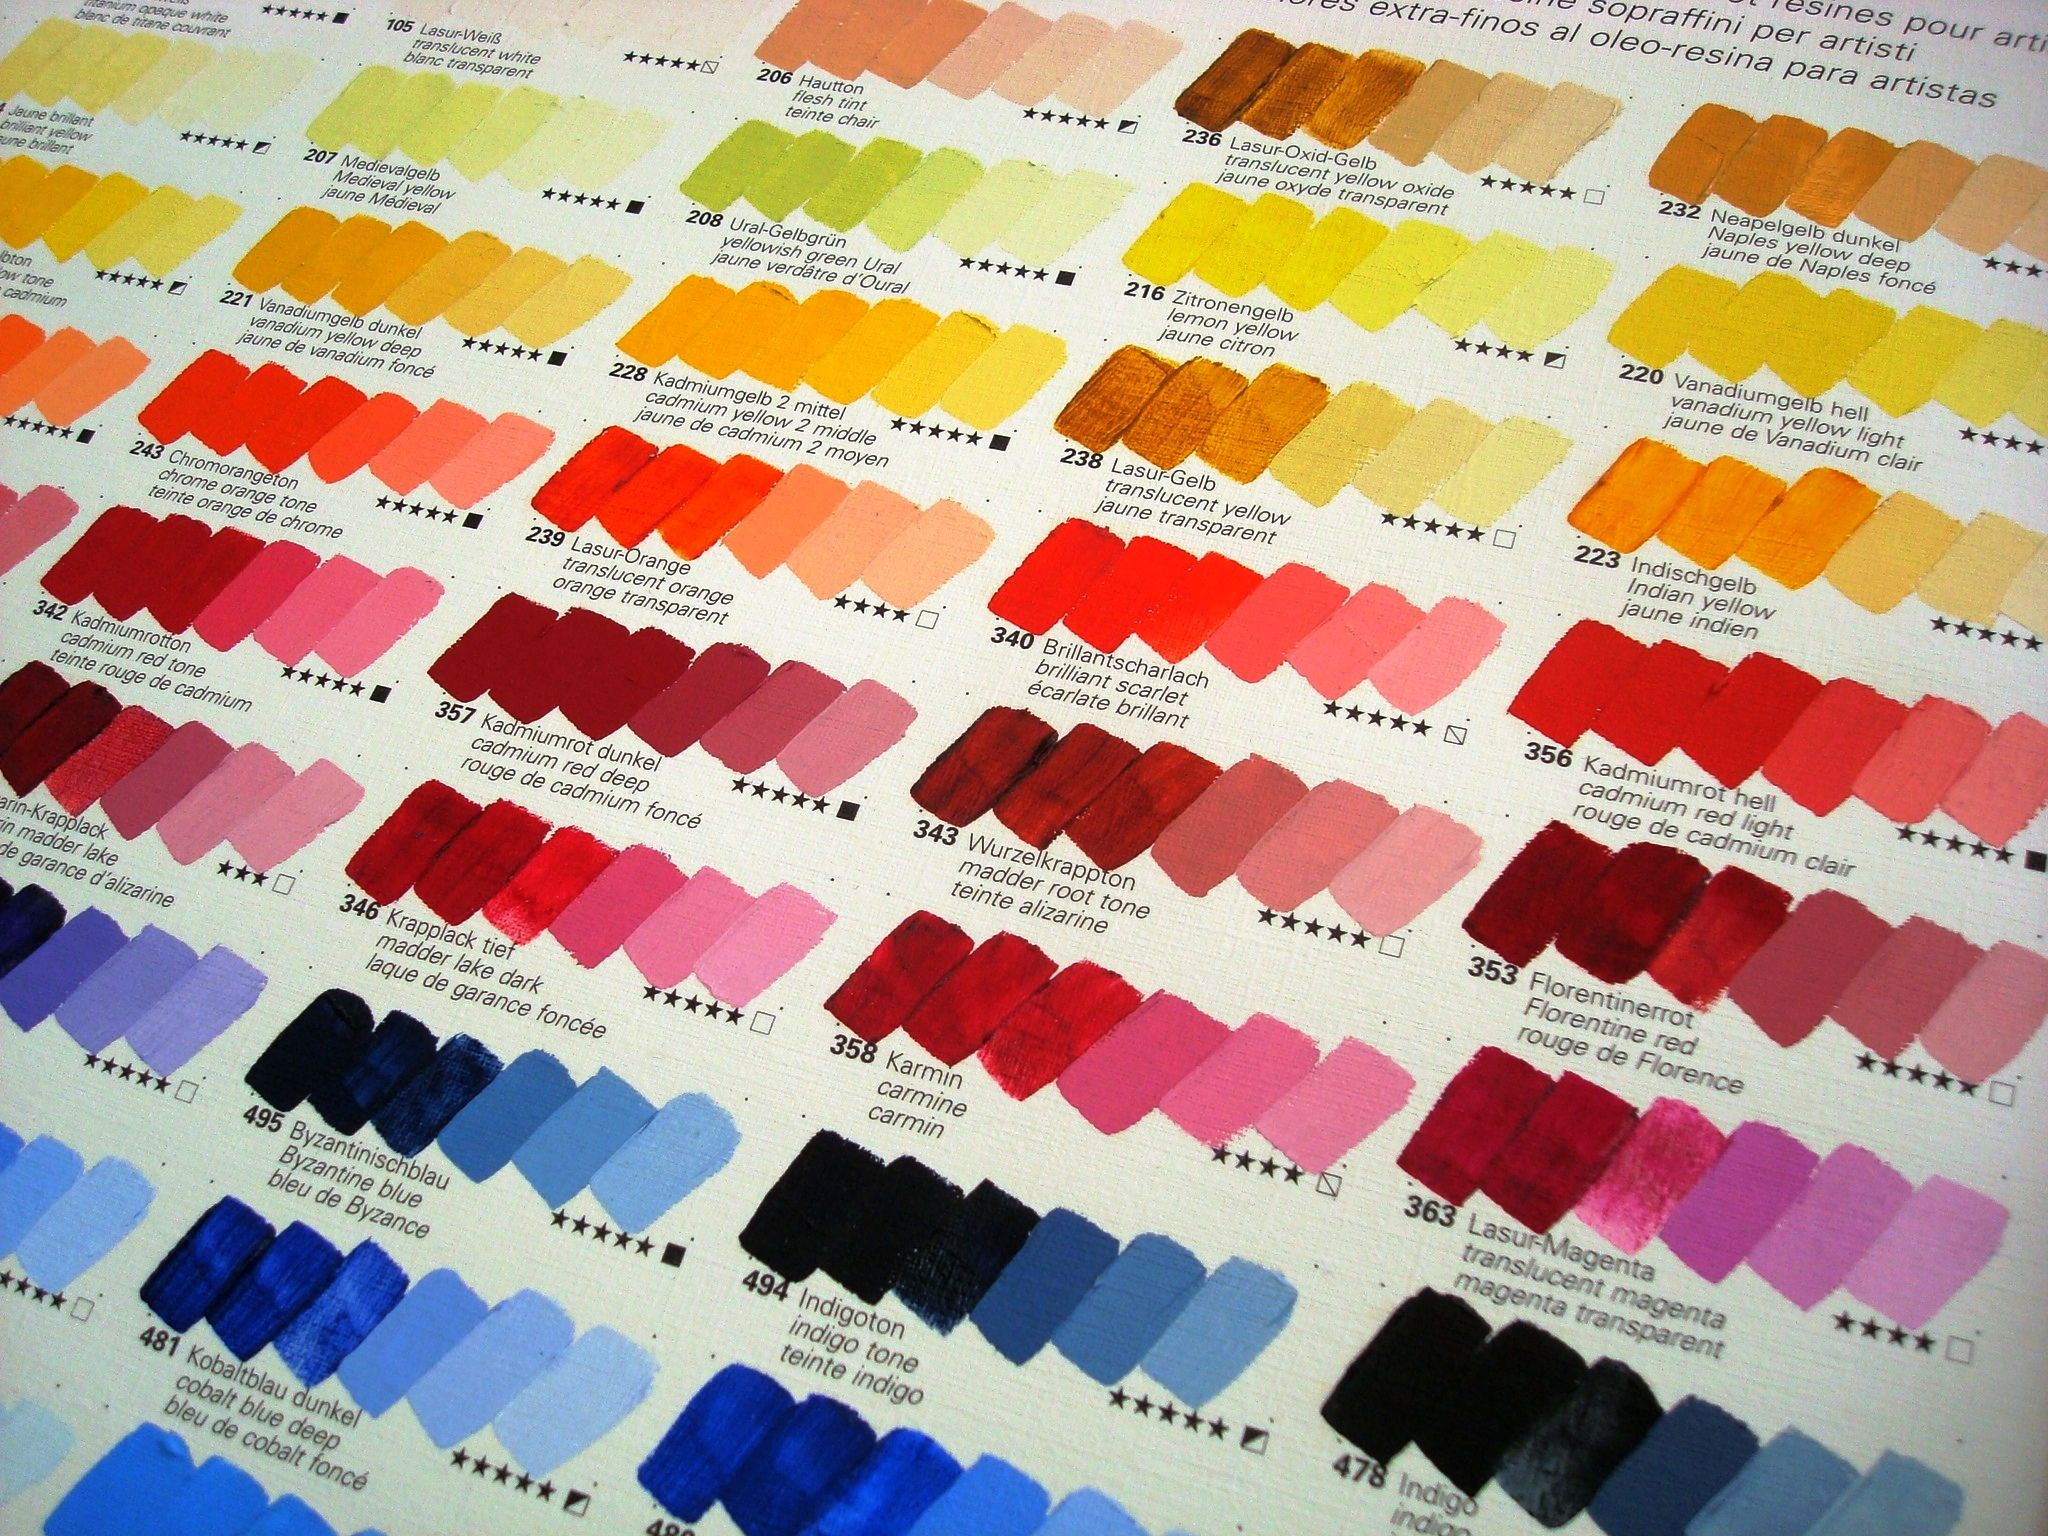 Colour Charts! Talk about unlimited potential. Hmmm.